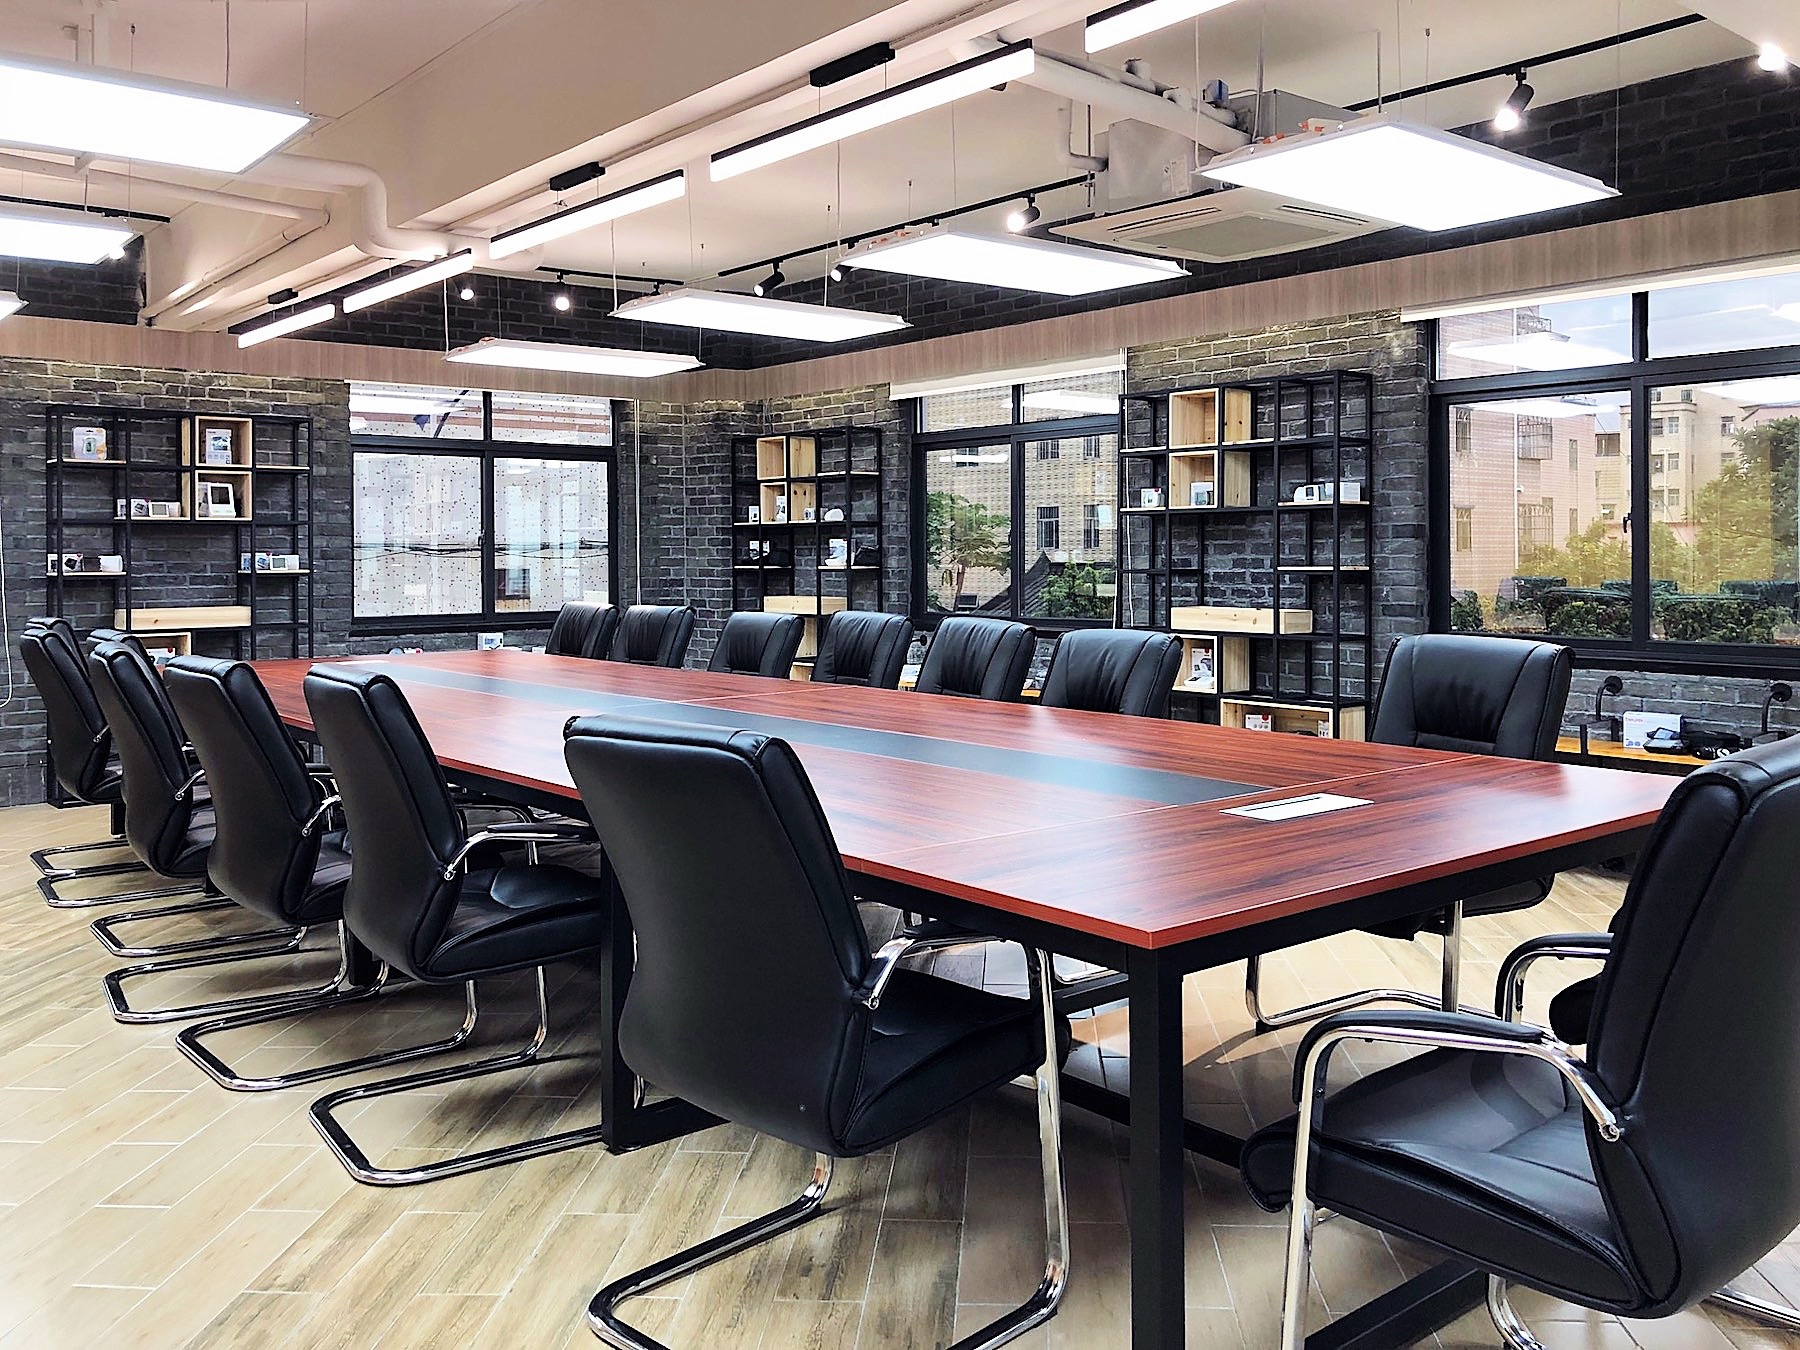 Grandway Office Renovation 2018 Main Conference Room 006